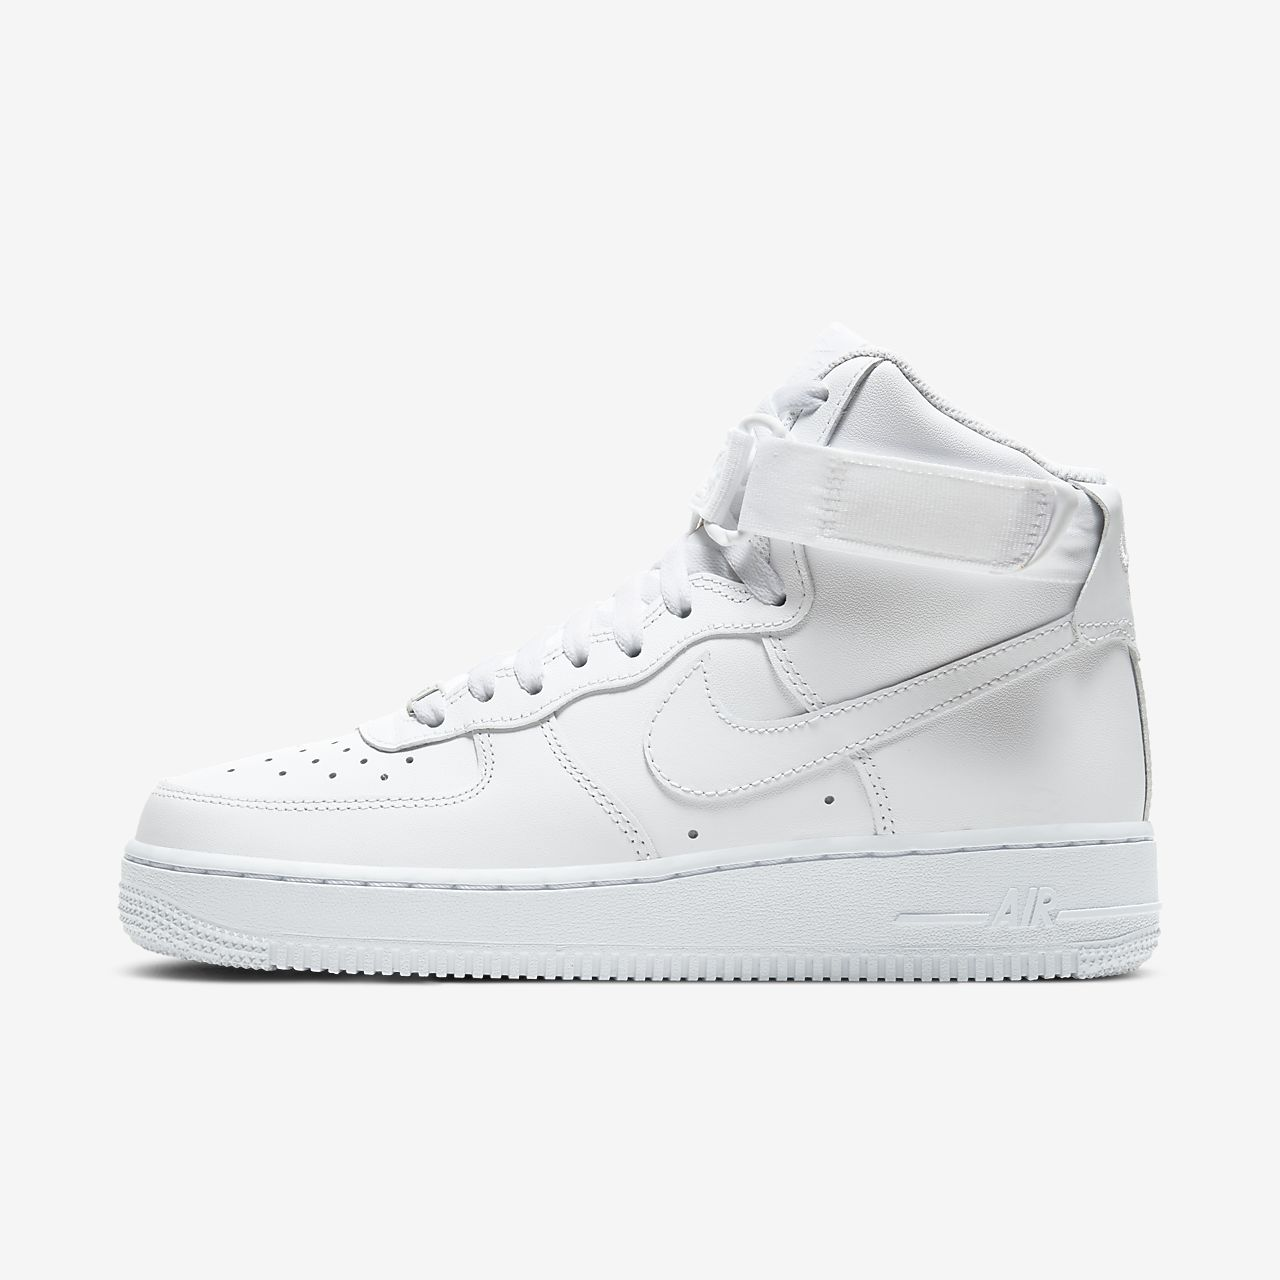 nike air force 1 high 08 le women 39 s shoe. Black Bedroom Furniture Sets. Home Design Ideas